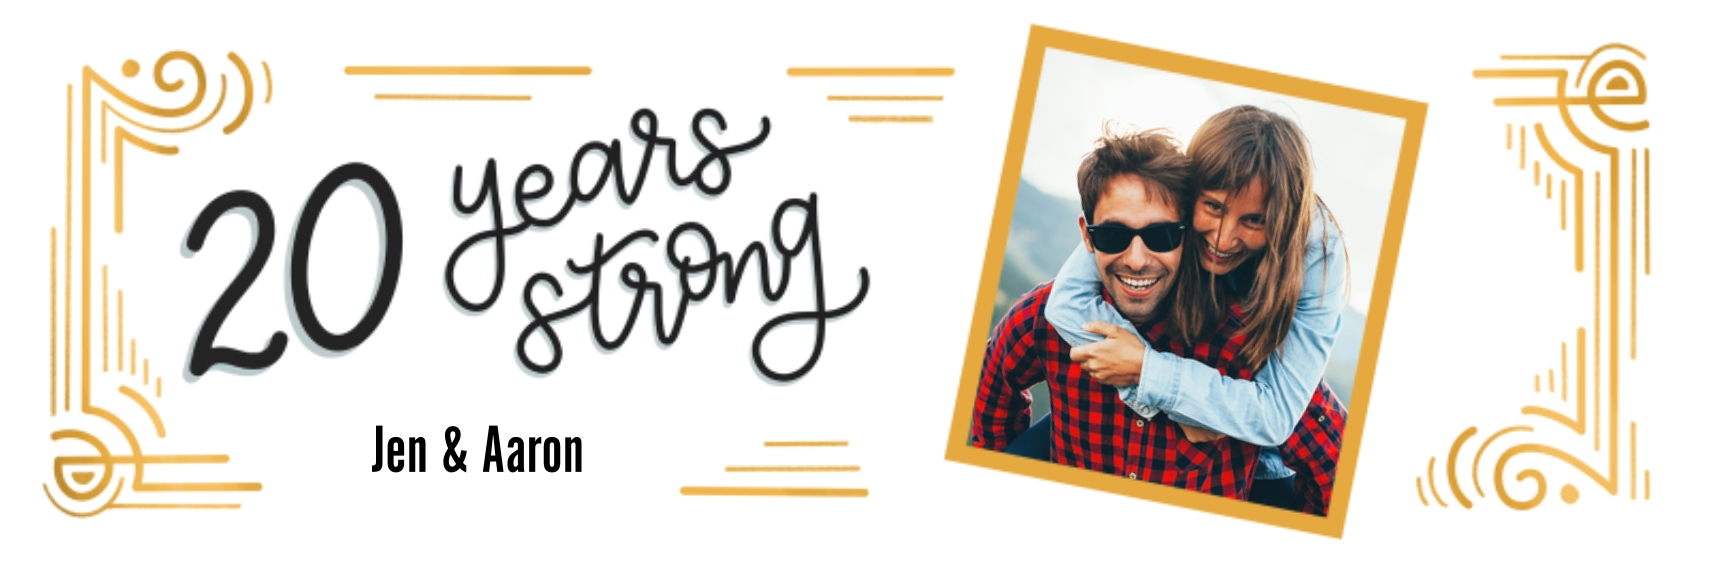 Anniversary Photo Banner 1x3, Home Décor -20 Years Strong